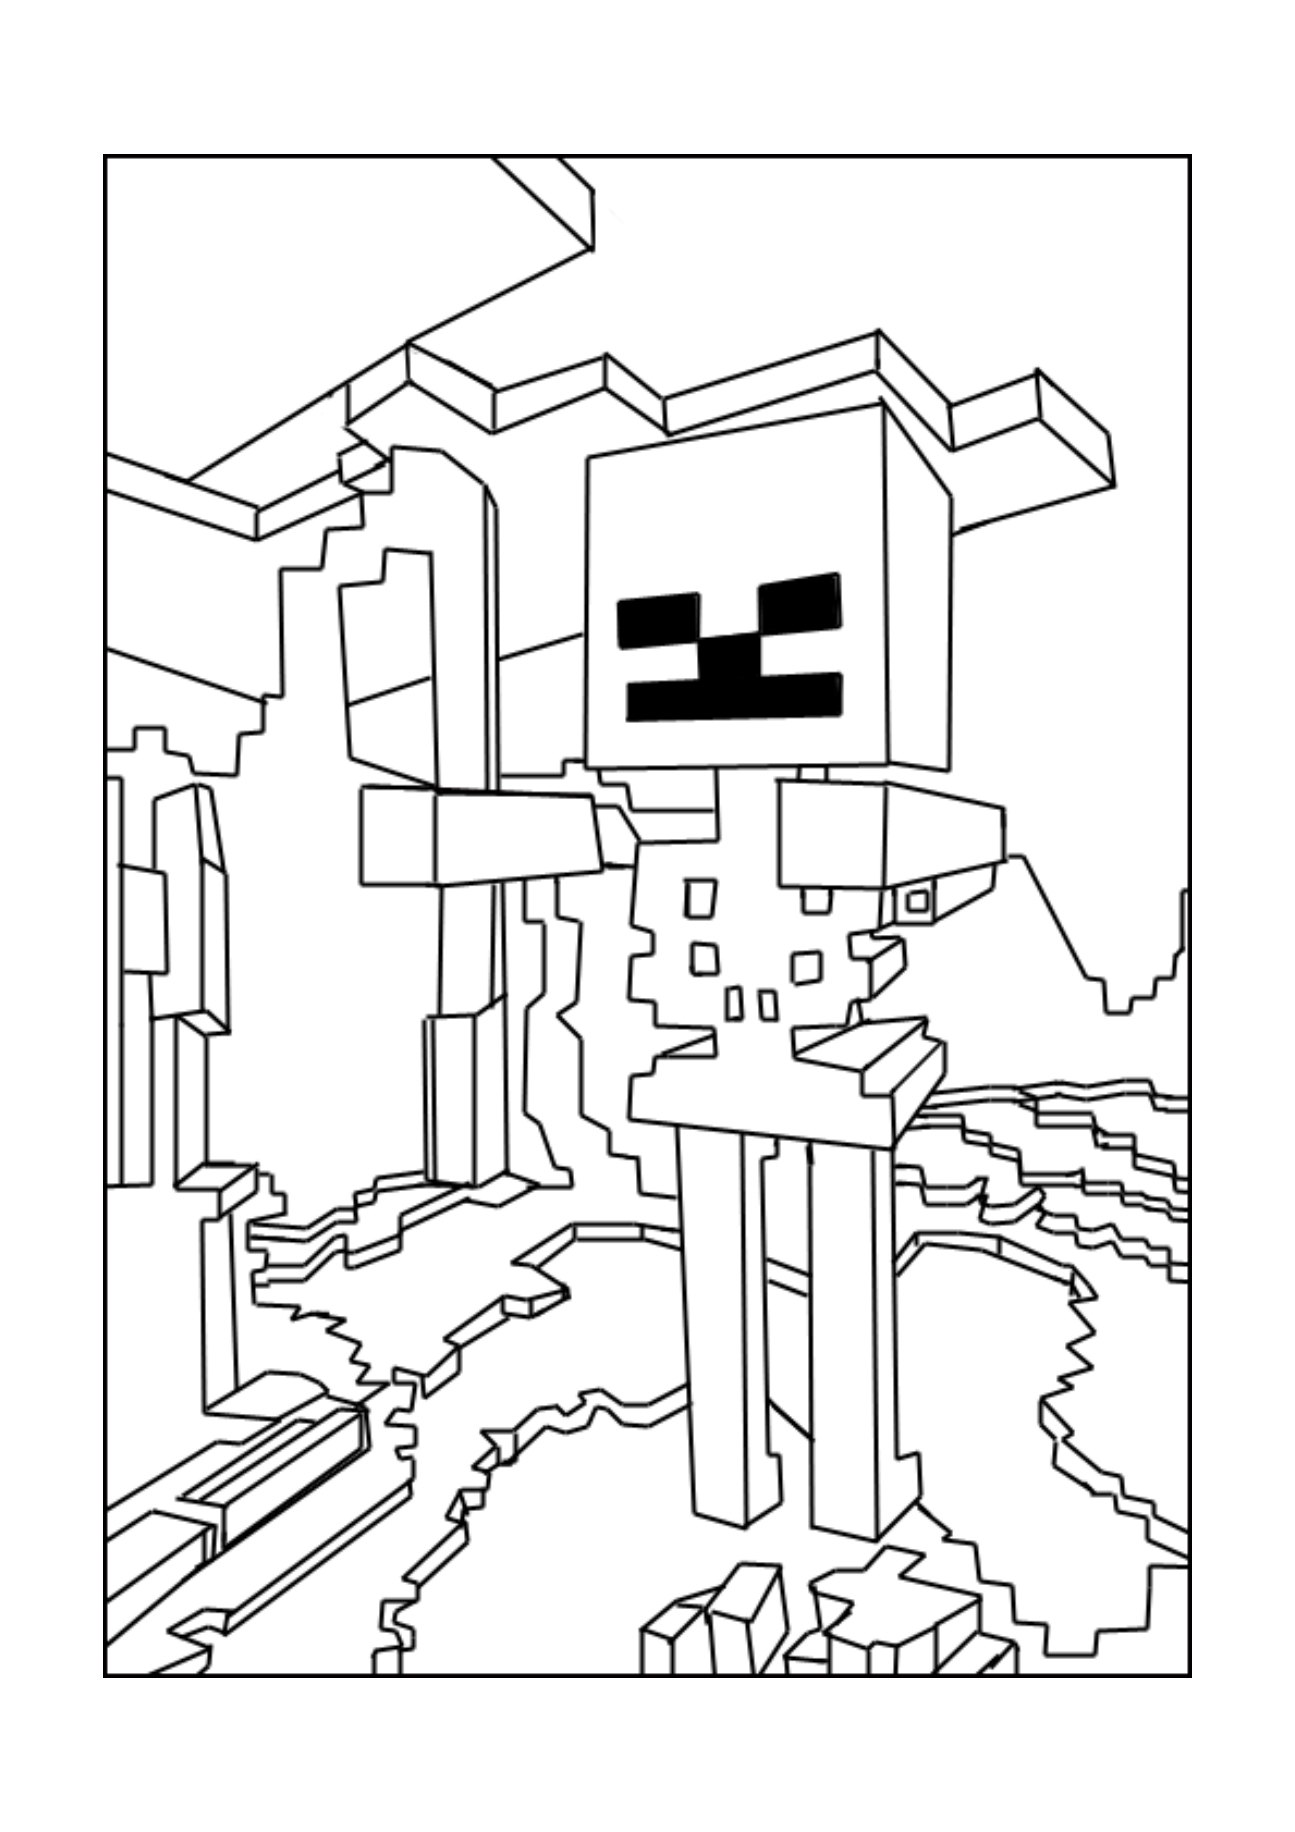 mine craft coloring pages minecraft free to color for children minecraft kids craft mine coloring pages